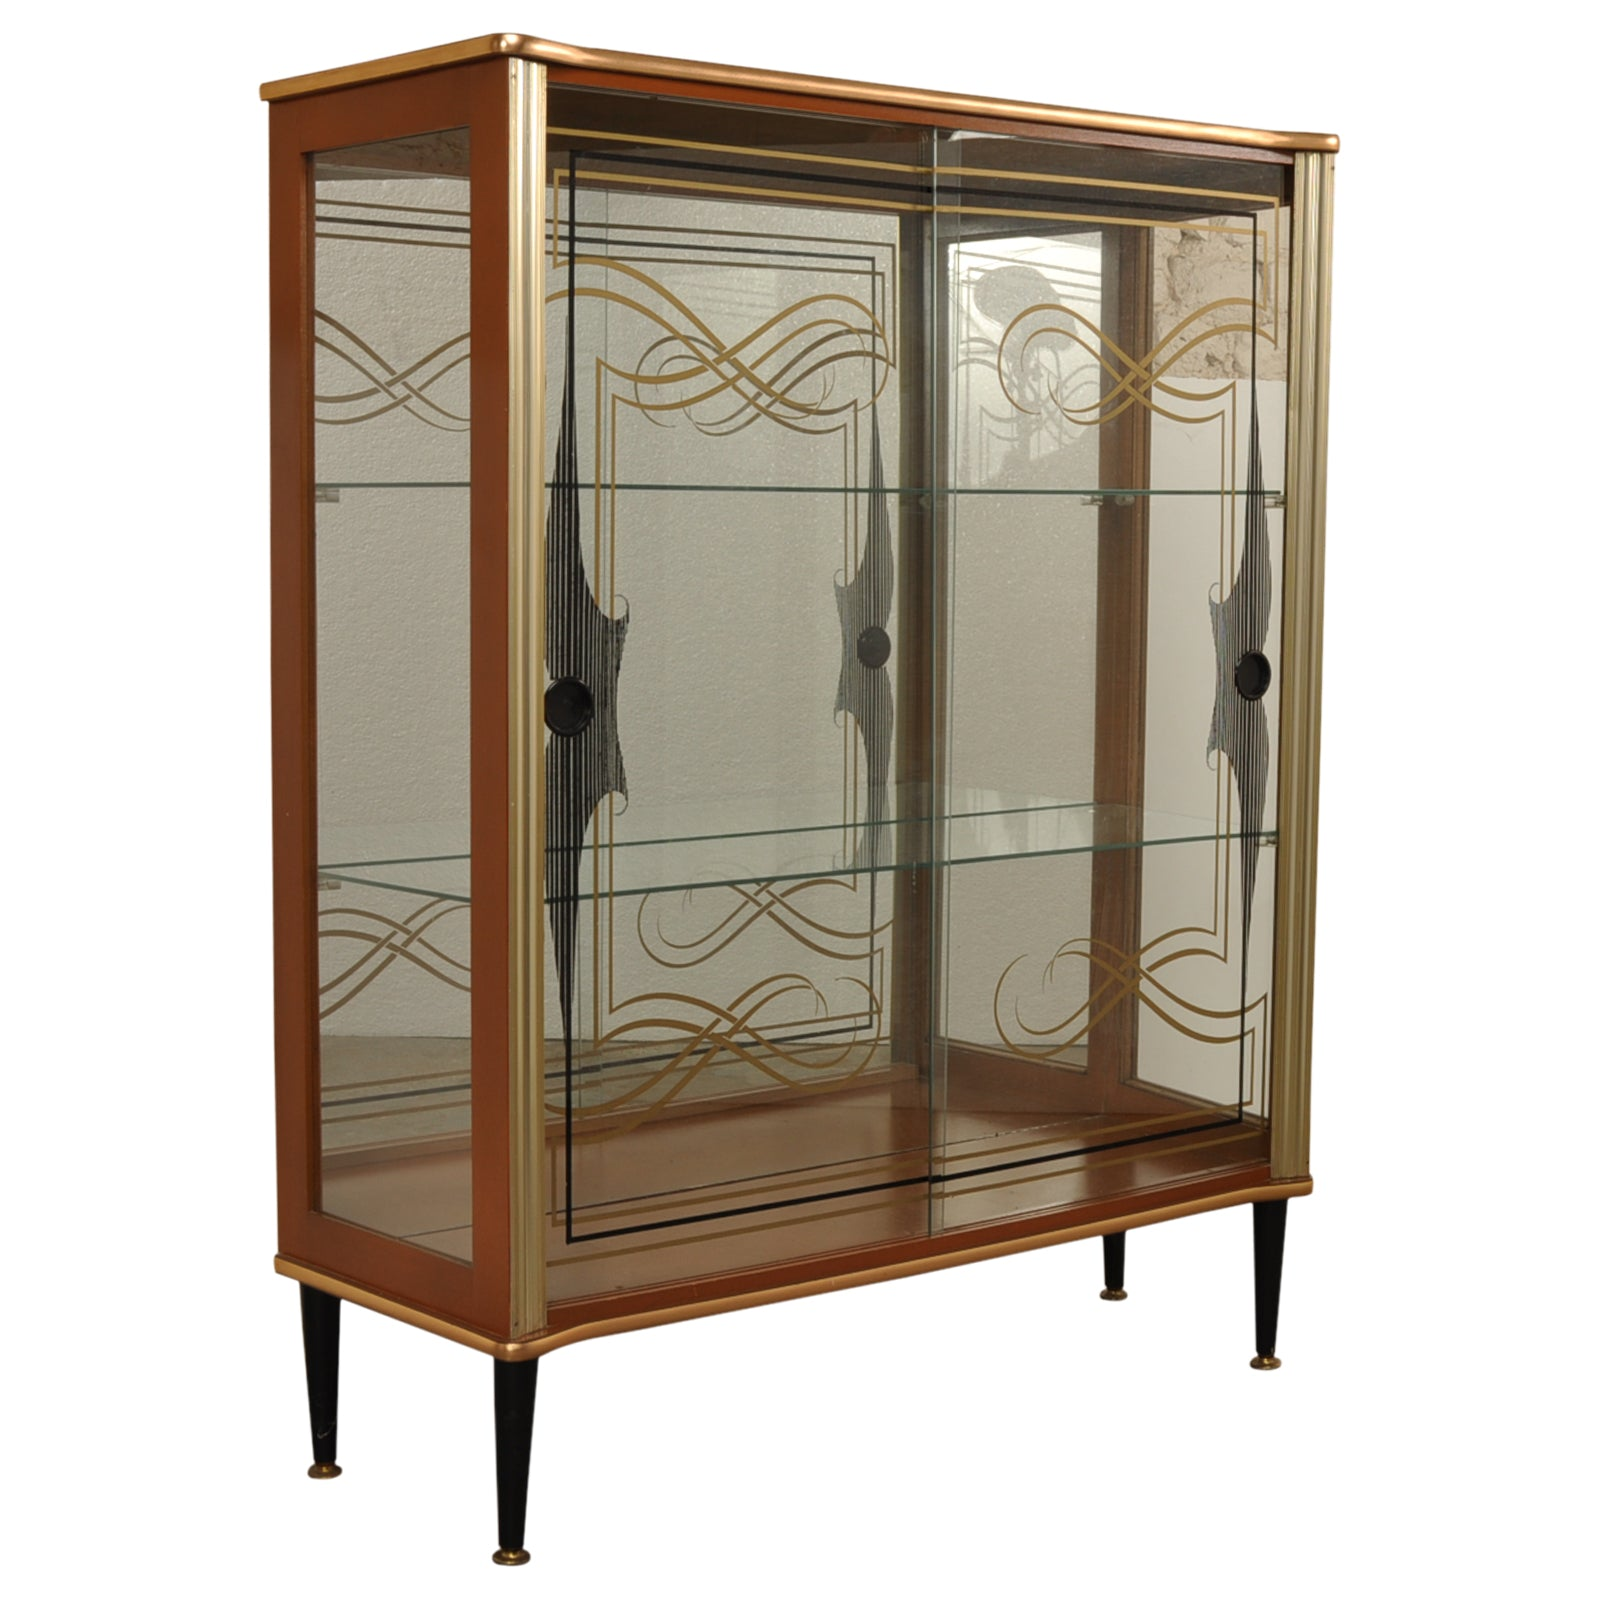 1950s black and gold patterned glass cocktail / display cabinet